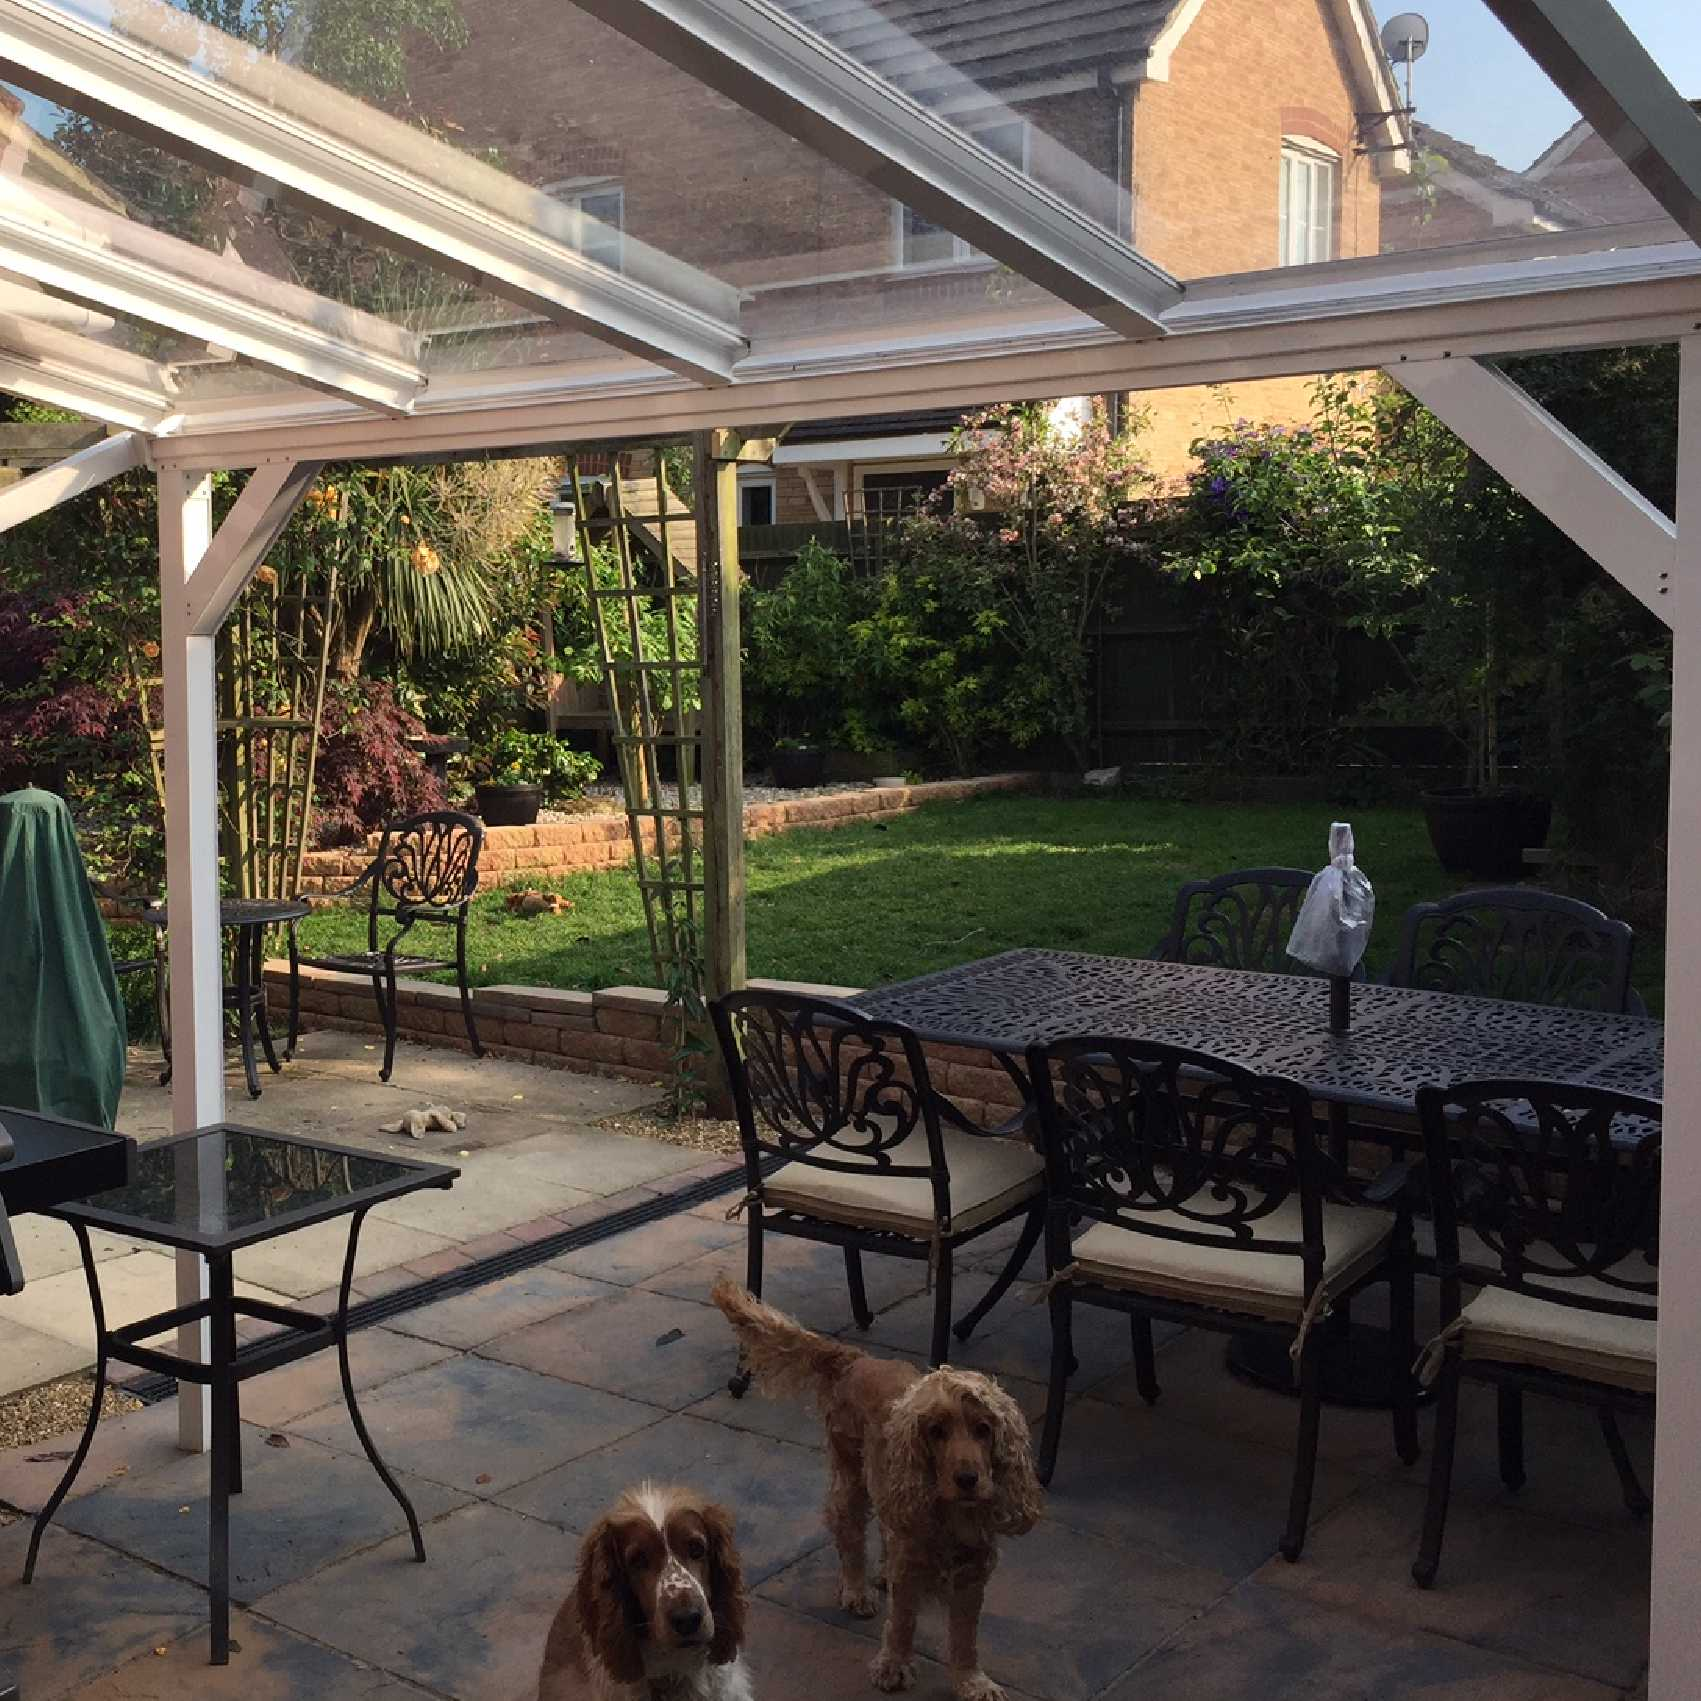 Affordable Omega Smart White Lean-To Canopy UNGLAZED for 6mm Glazing - 4.9m (W) x 2.0m (P), (3) Supporting Posts